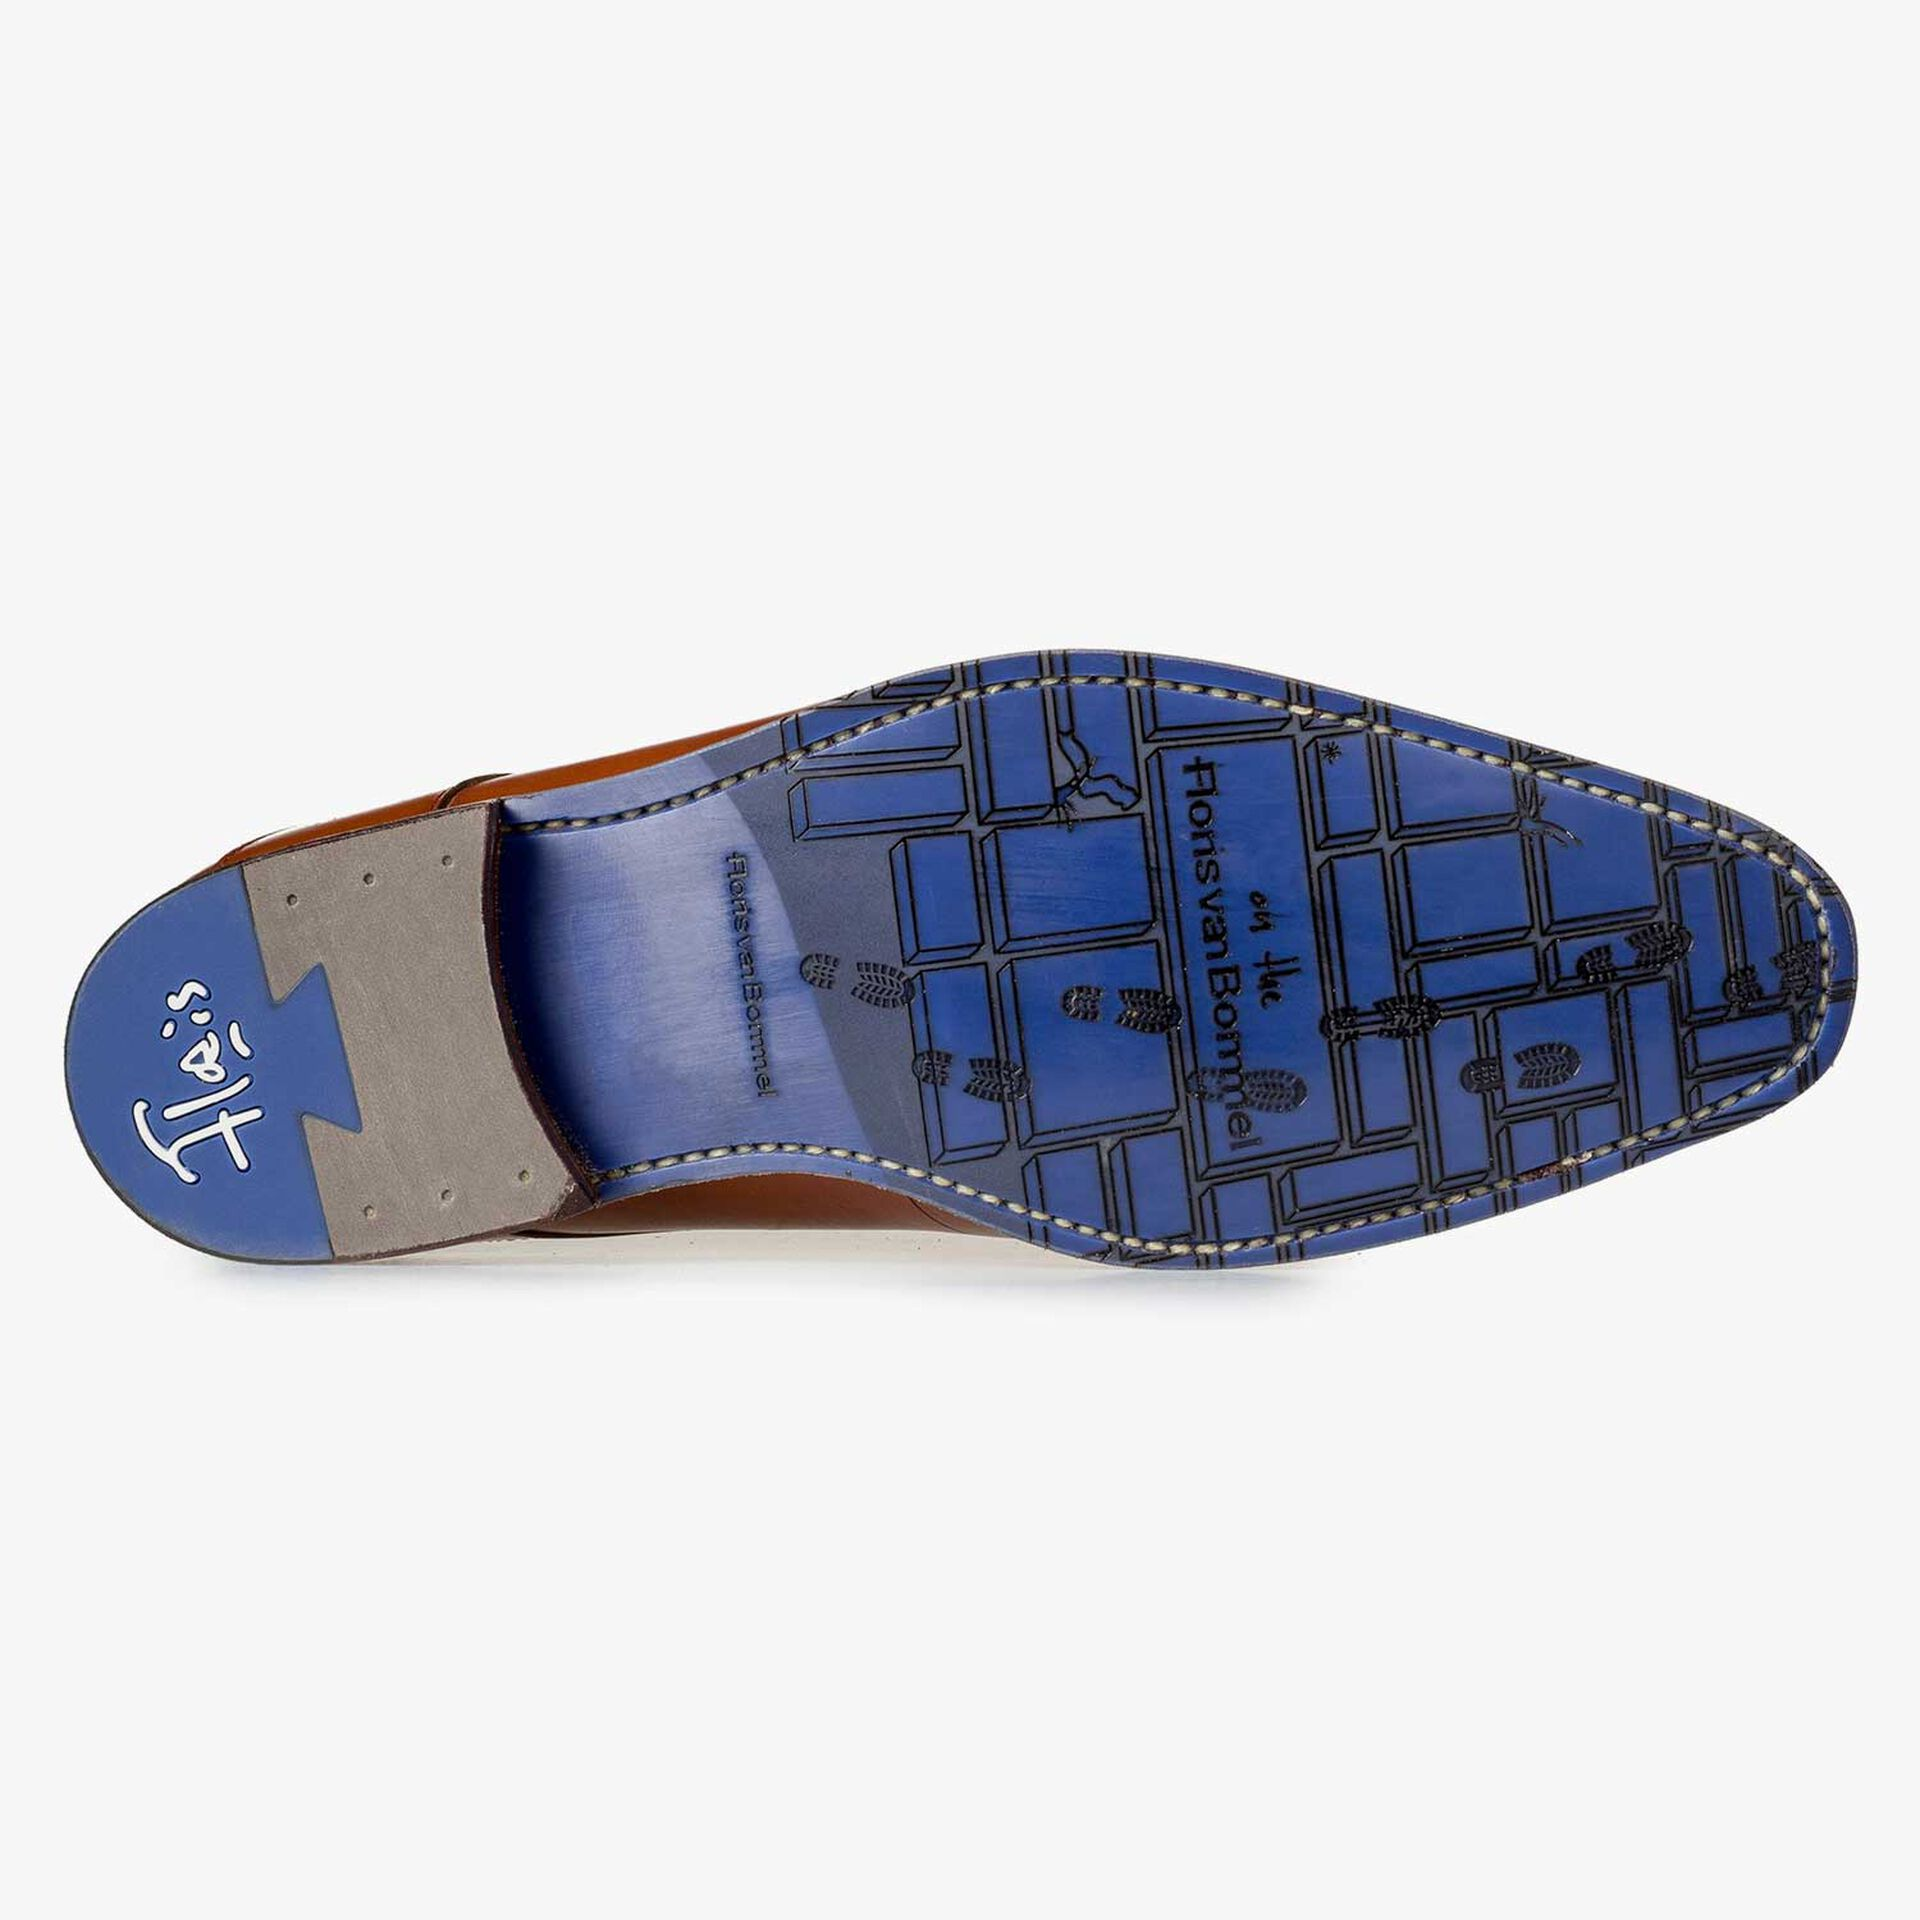 Cognac-coloured lace shoe with croco relief pattern